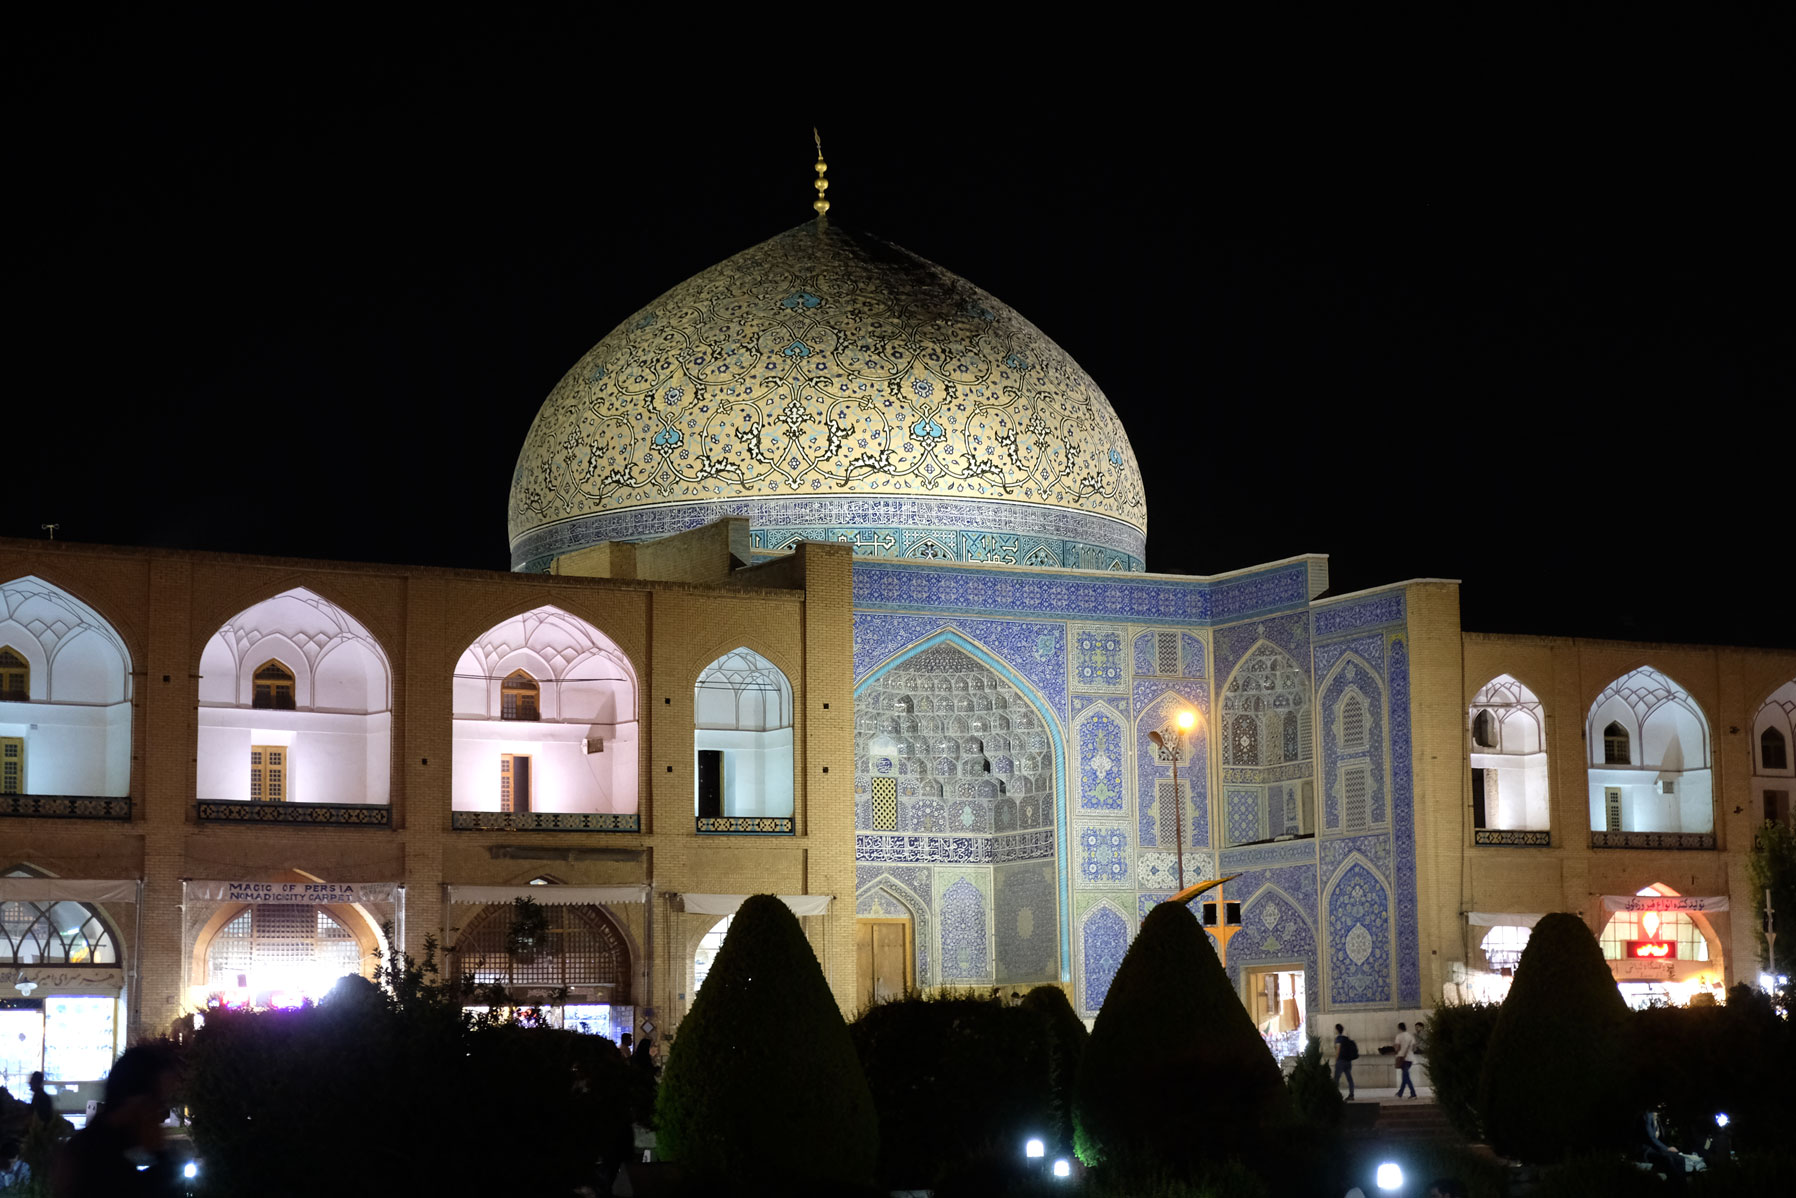 Scheich Lotfollah Moschee in Isfahan